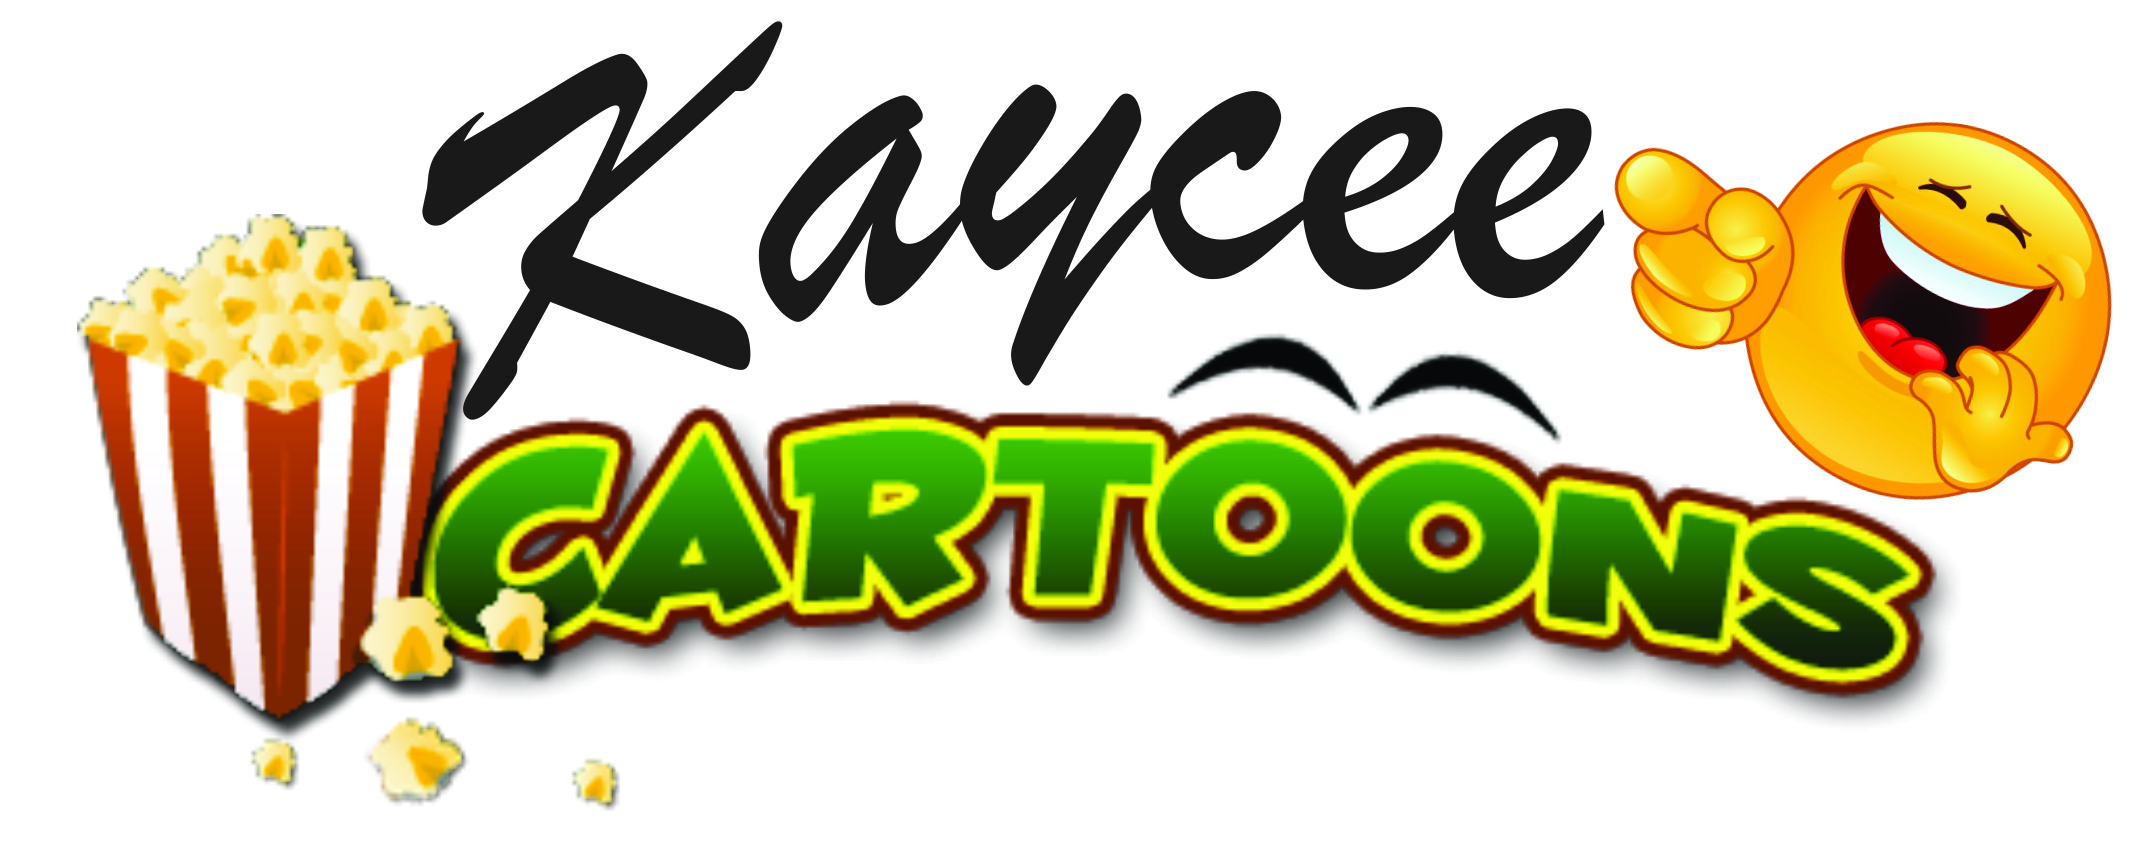 kaycee Cartoons